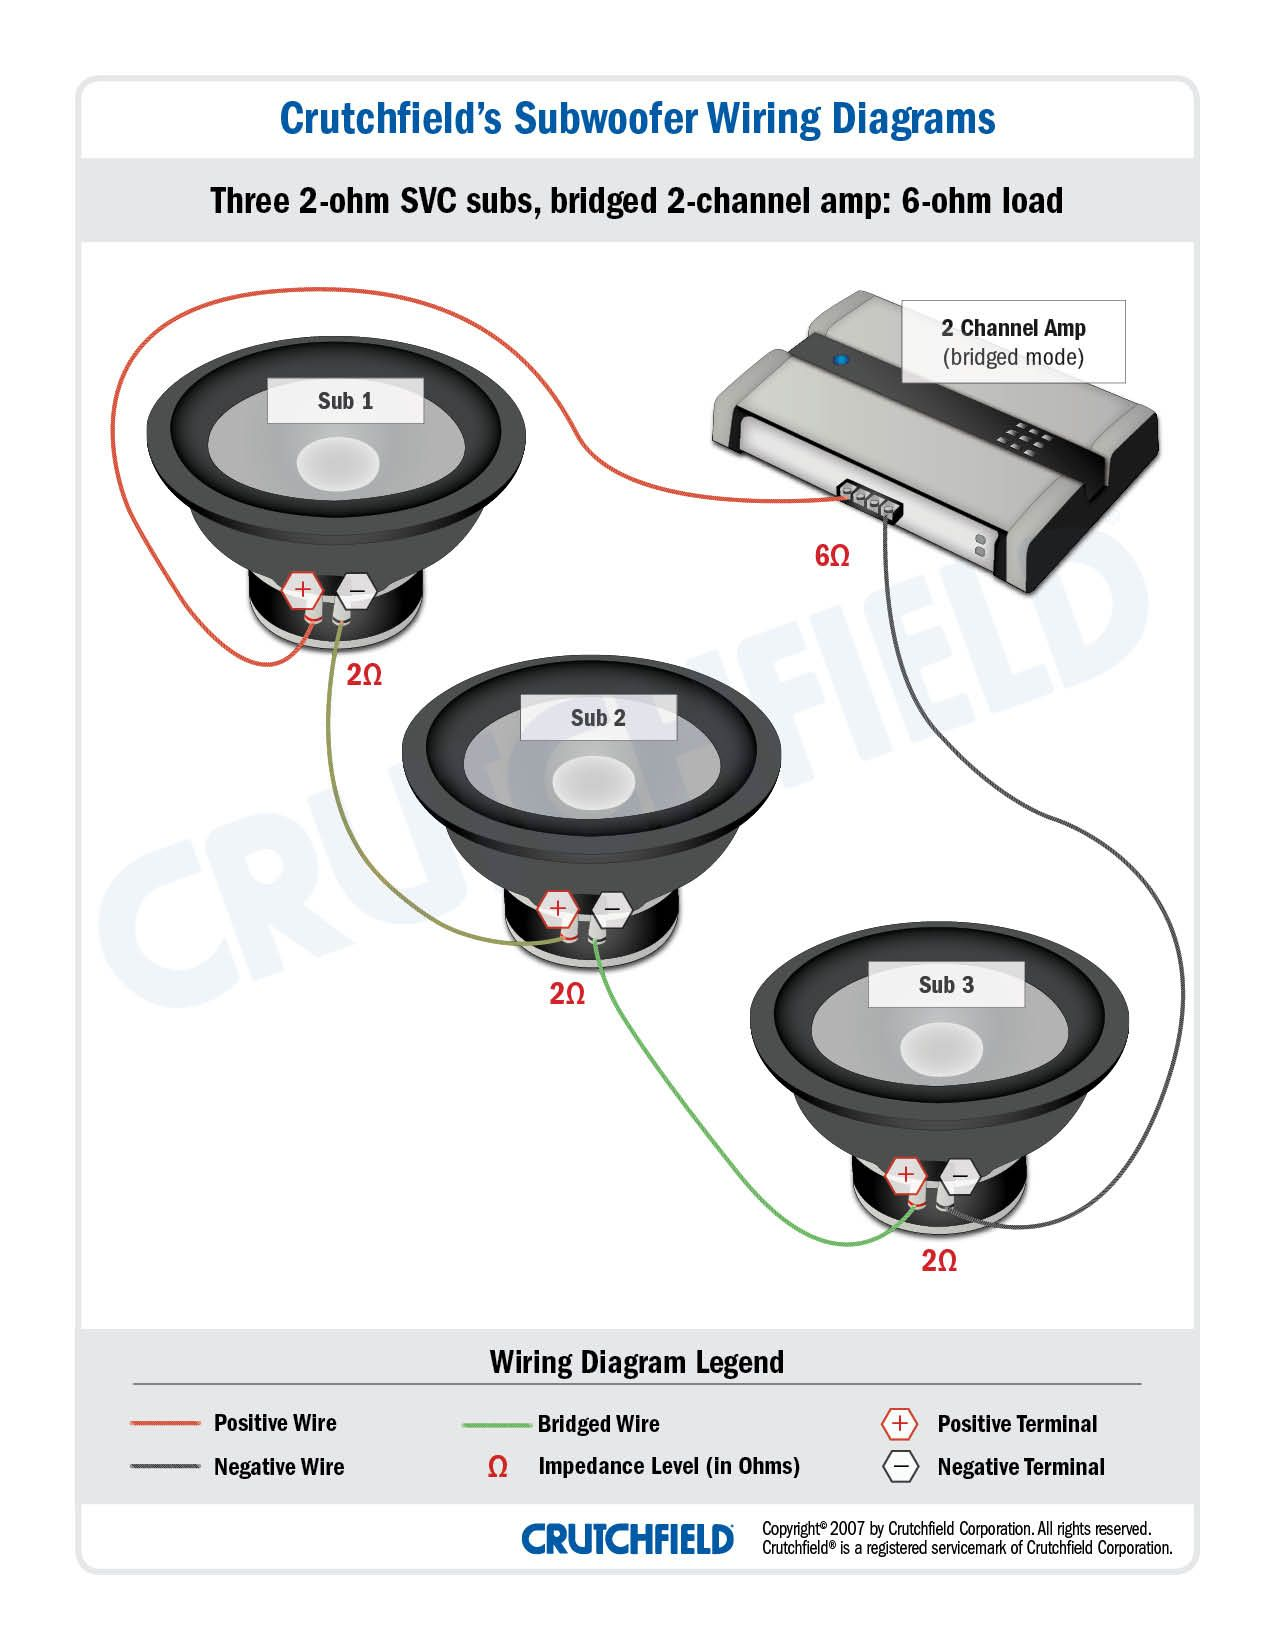 Subwoofer Wiring Diagrams How To Wire Your Subs Subwoofer Wiring Car Audio Installation Subwoofer